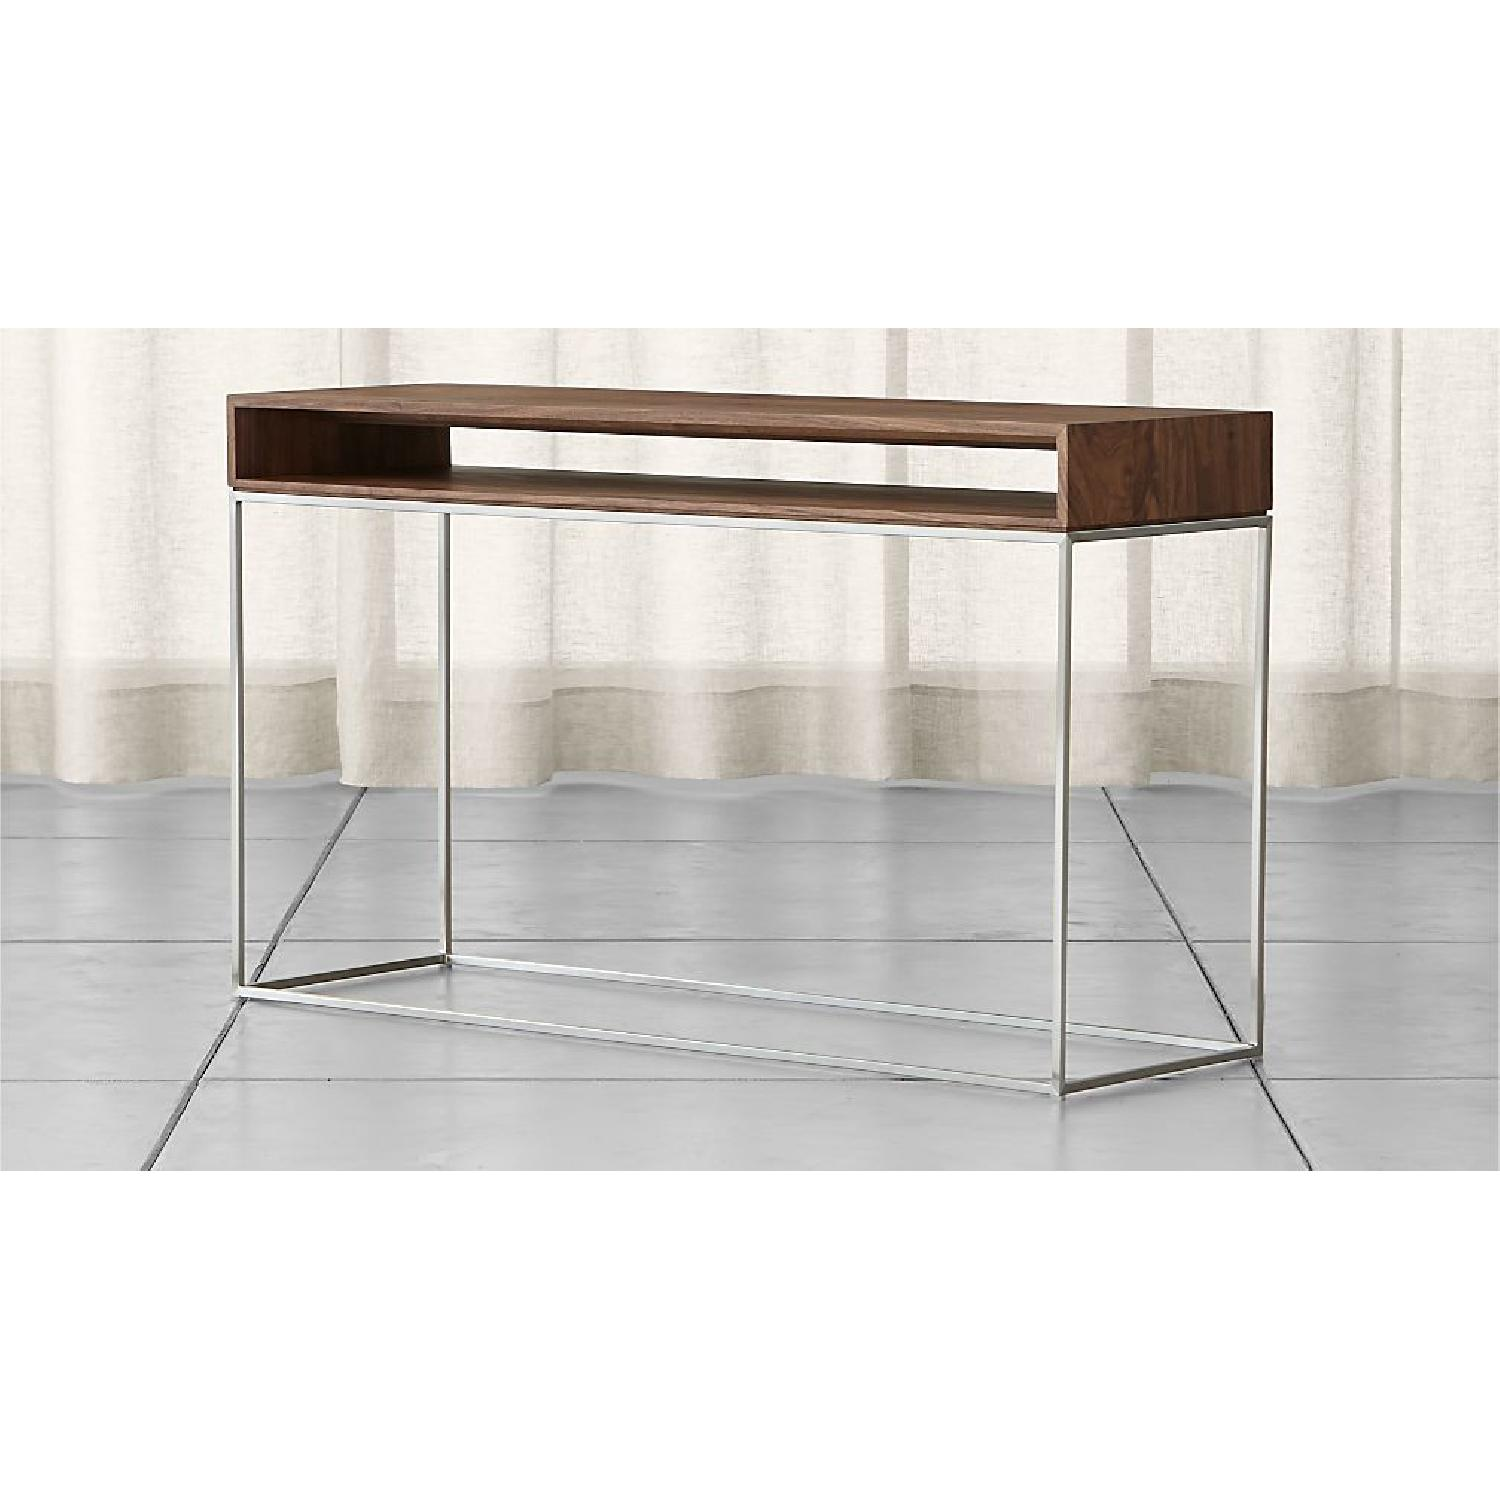 Crate & Barrel Frame Console Table - image-1